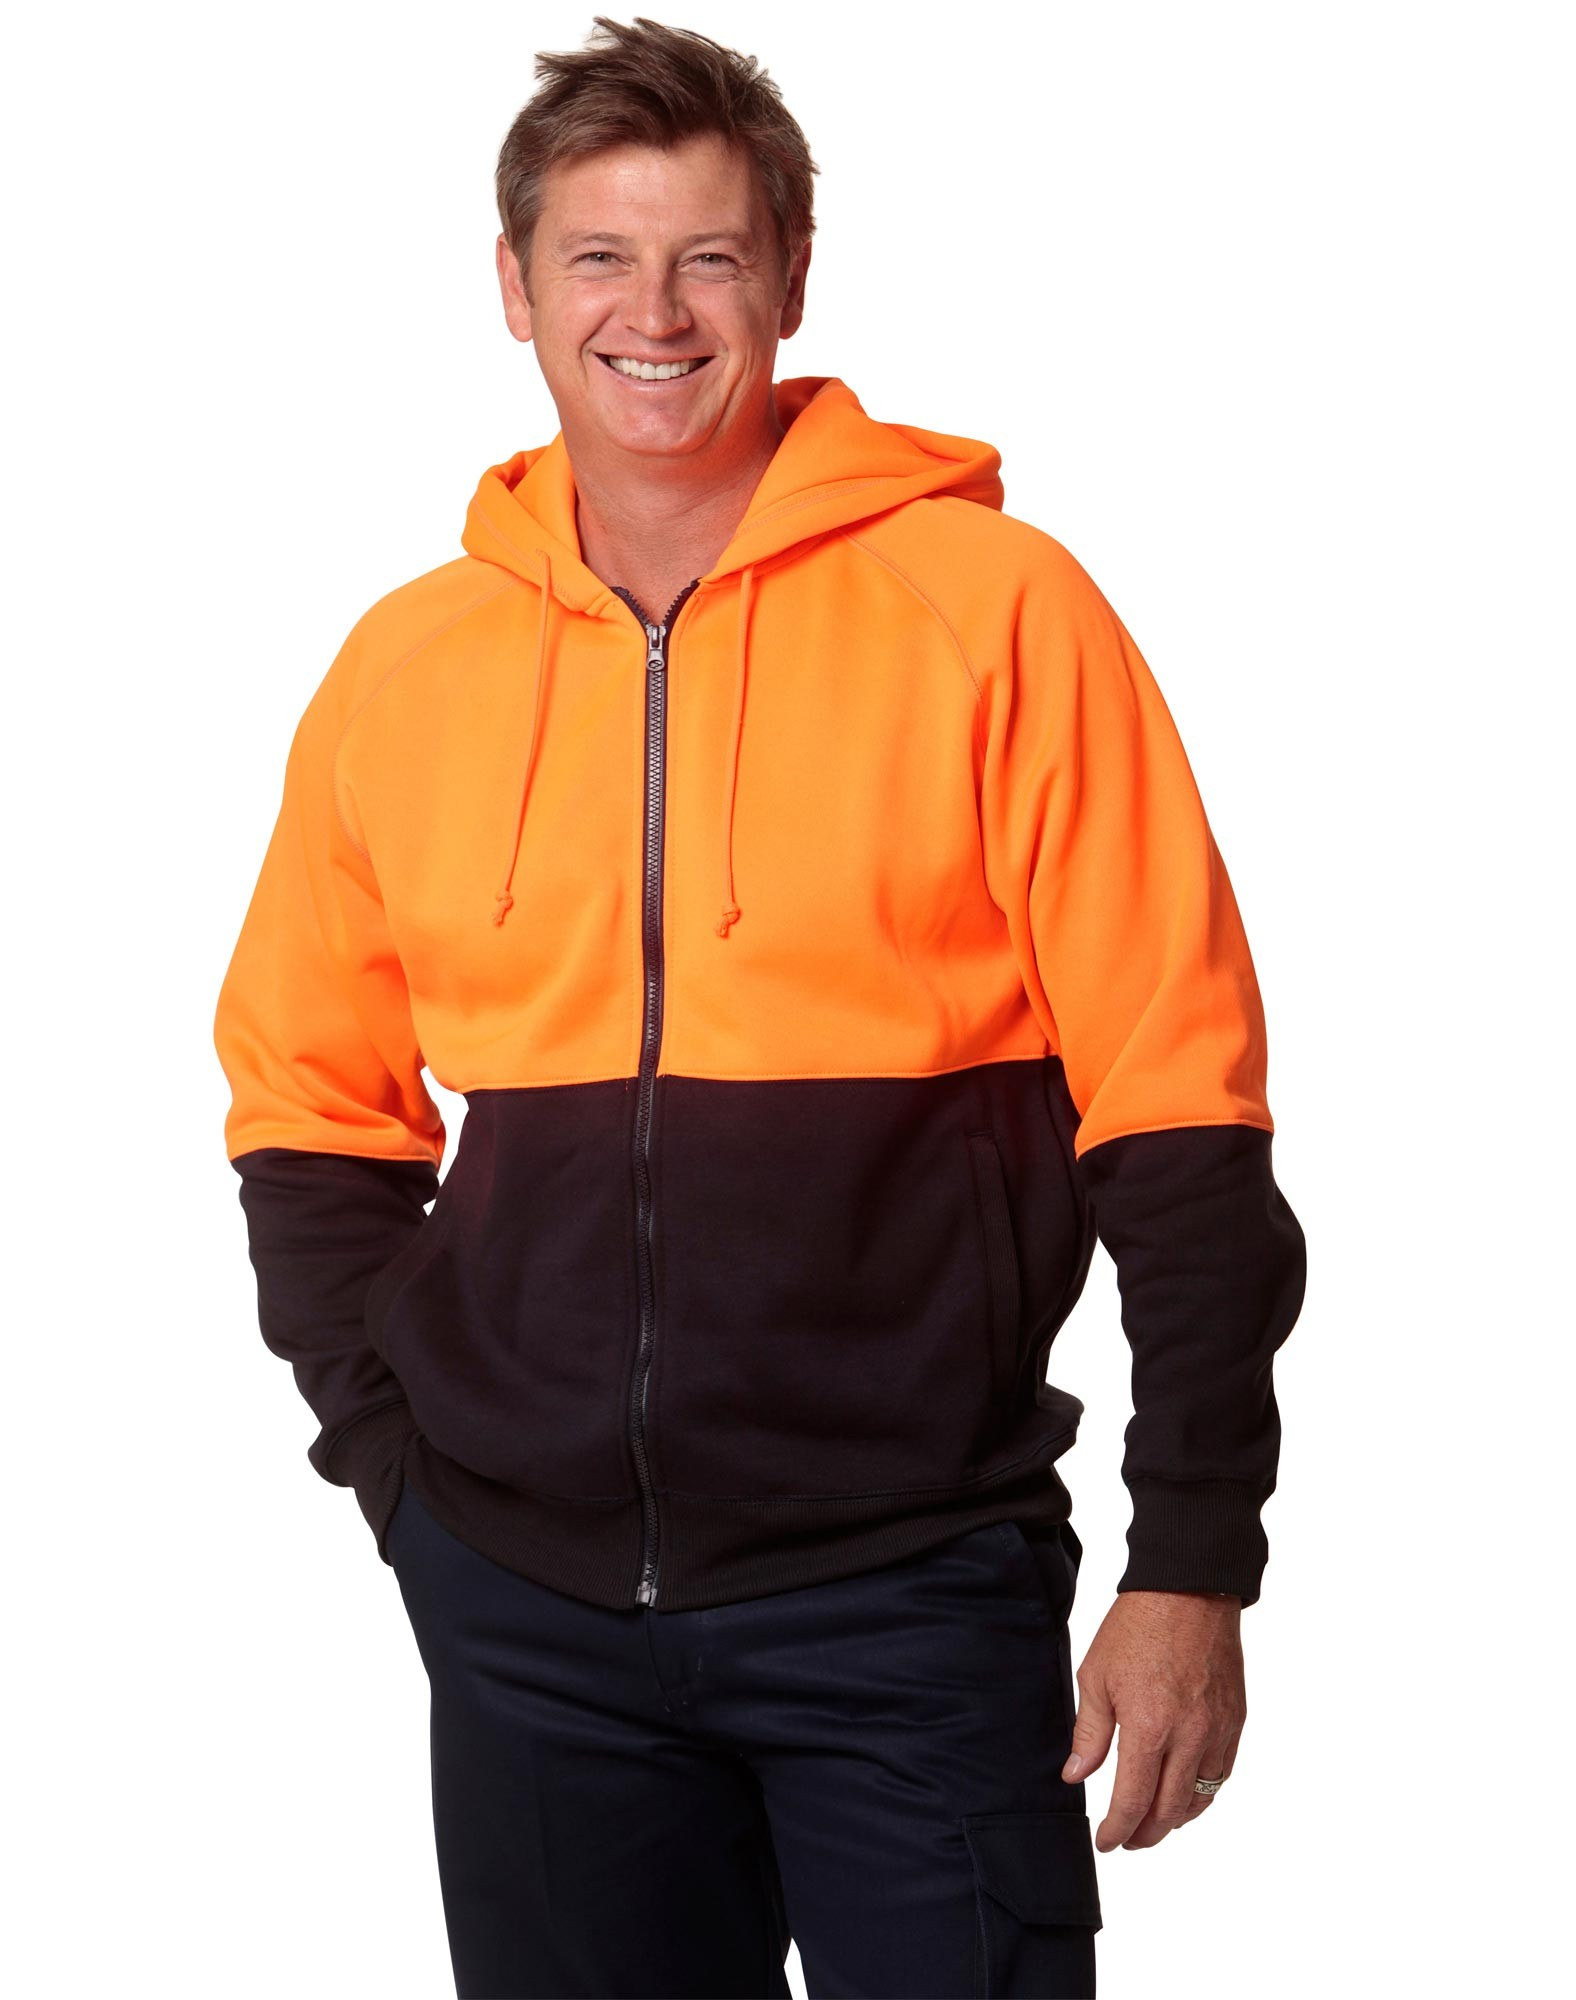 Men's High Visibility Two Tone Fleecy Hoodie